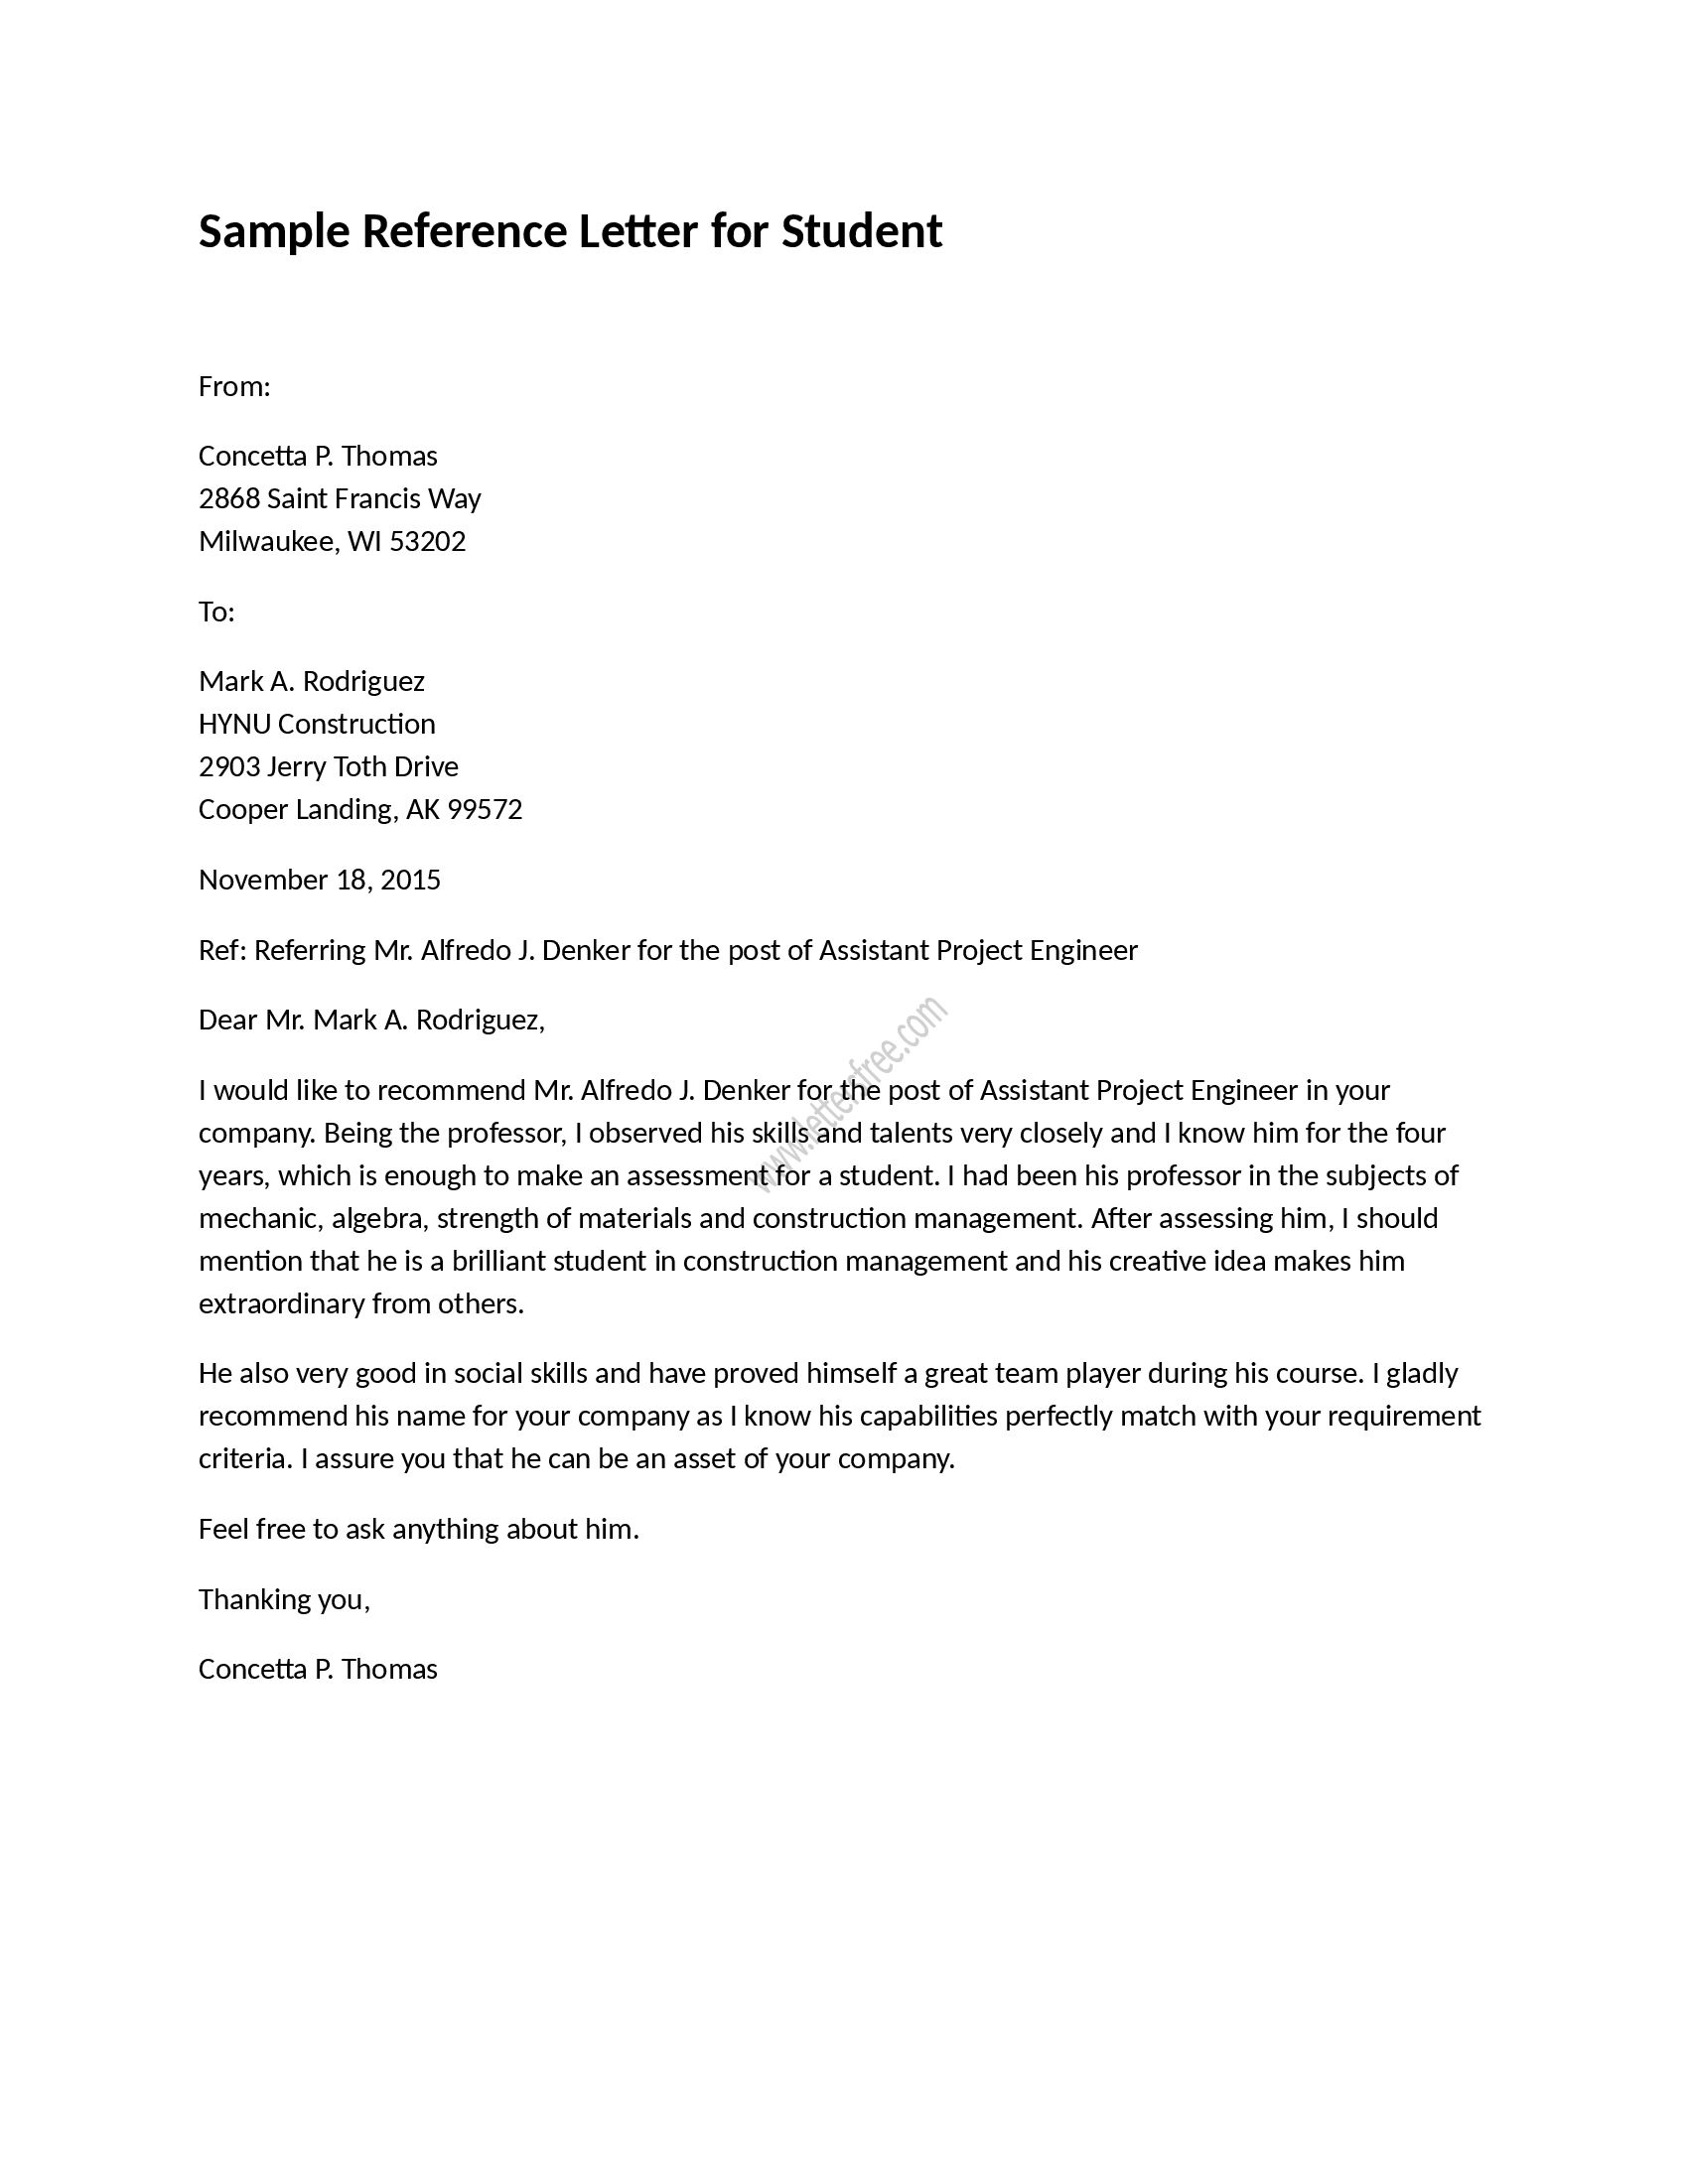 Sample Reference Letter For Student Is Written To Refer A Student